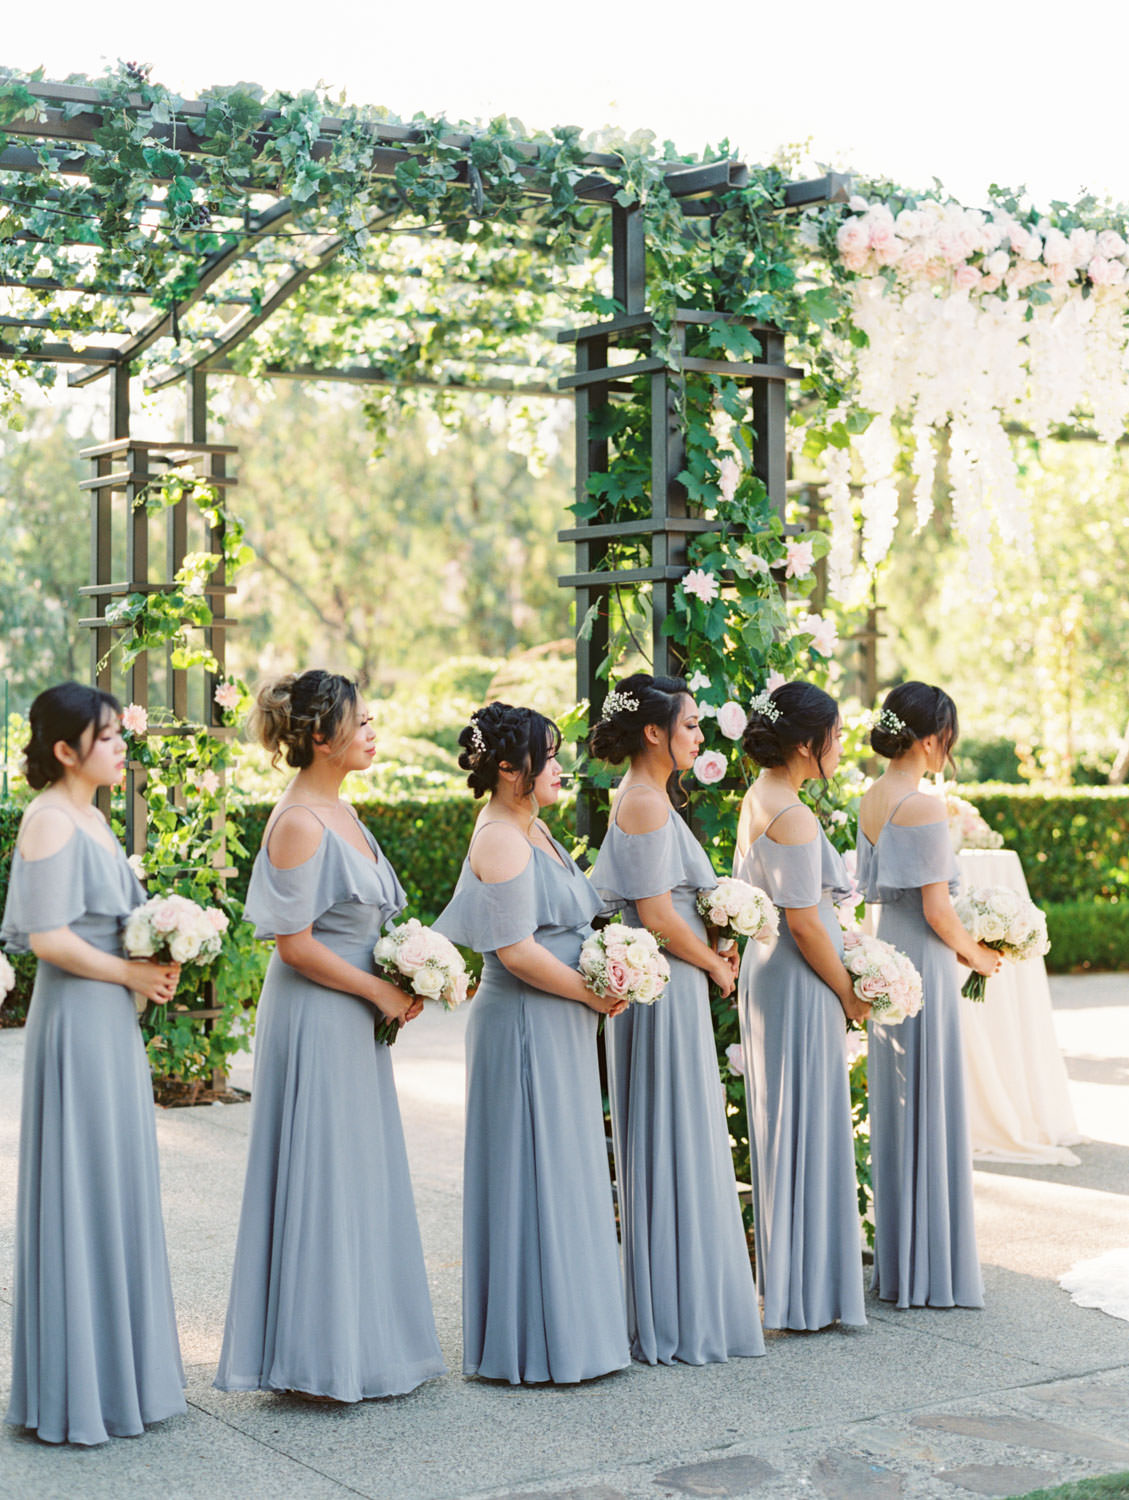 Bridesmaids in soft grey cut out shoulder gowns. Pergola wrapped in greenery with blush flowers on the side columns and hanging blush and ivory flowers in the center. Rancho Bernardo Inn Aragon lawn wedding ceremony. Film photo by Cavin Elizabeth Photography